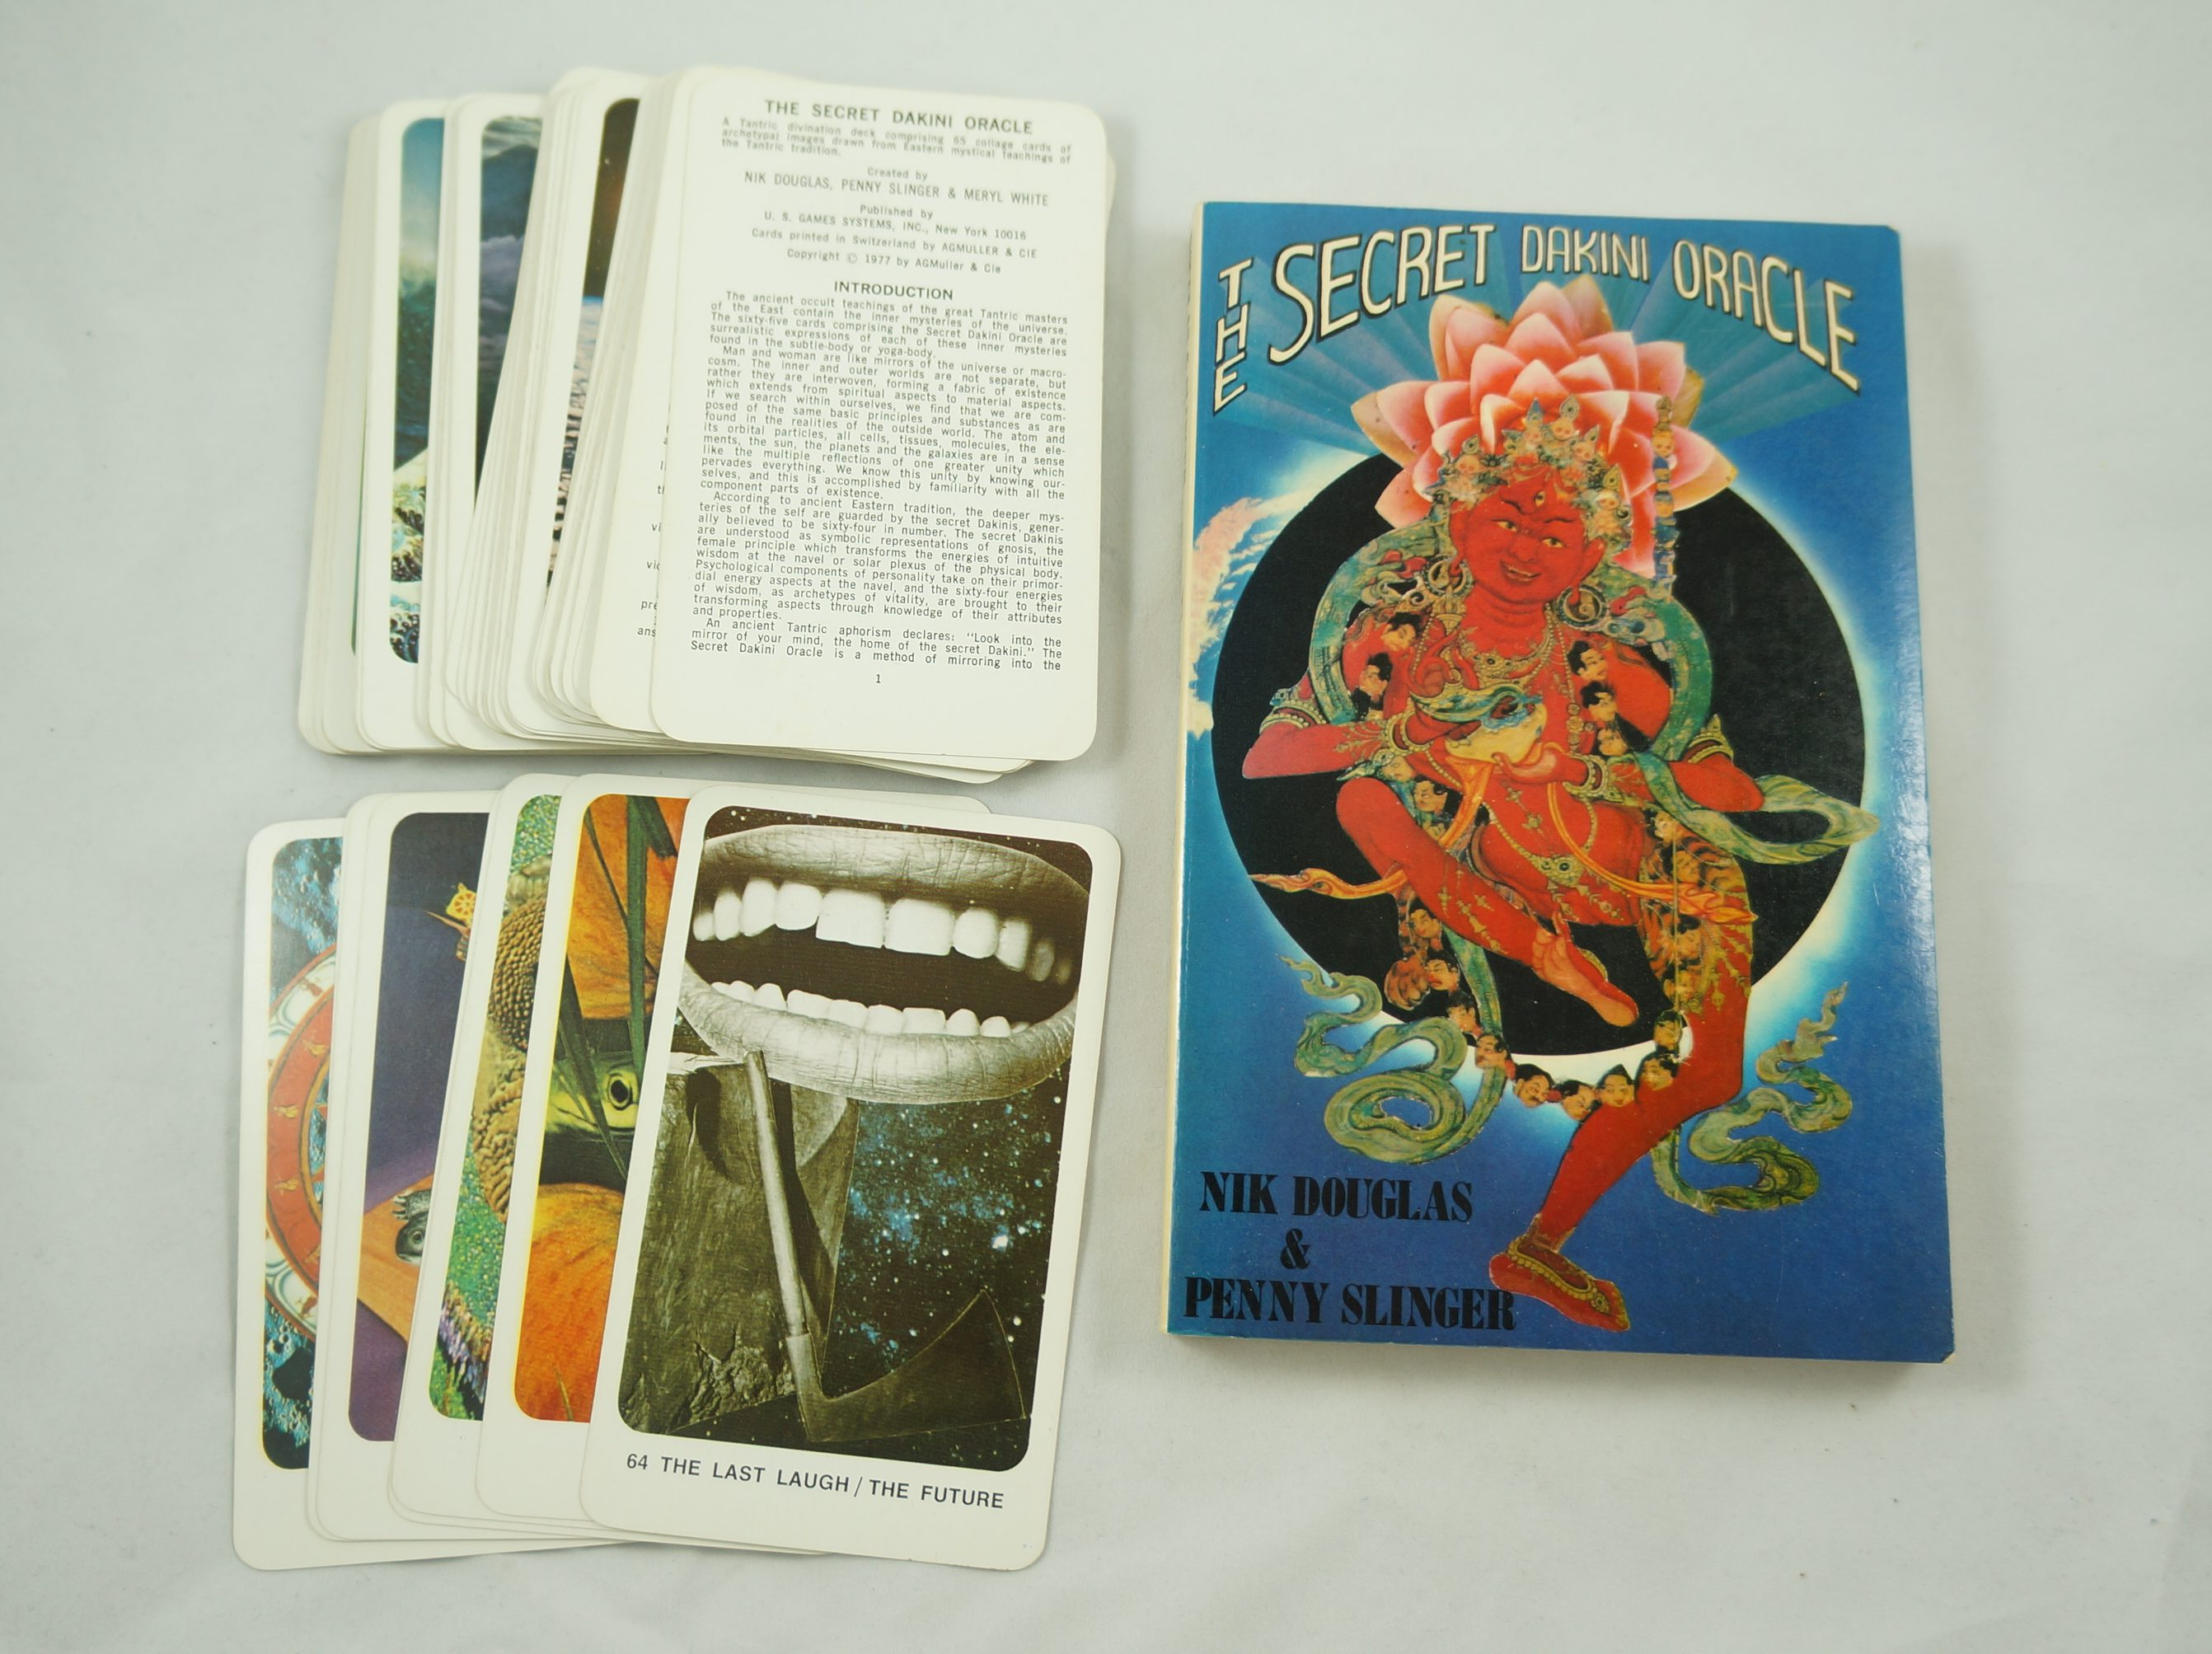 Ebay Things I Find In The Garbage Circuit Breaker Labels Secret Dakini Oracle Tarot Deck On For 50 Theyd Have Been Worth More But One Card Was Missing Oh Well They Still Fetched A Decent Price